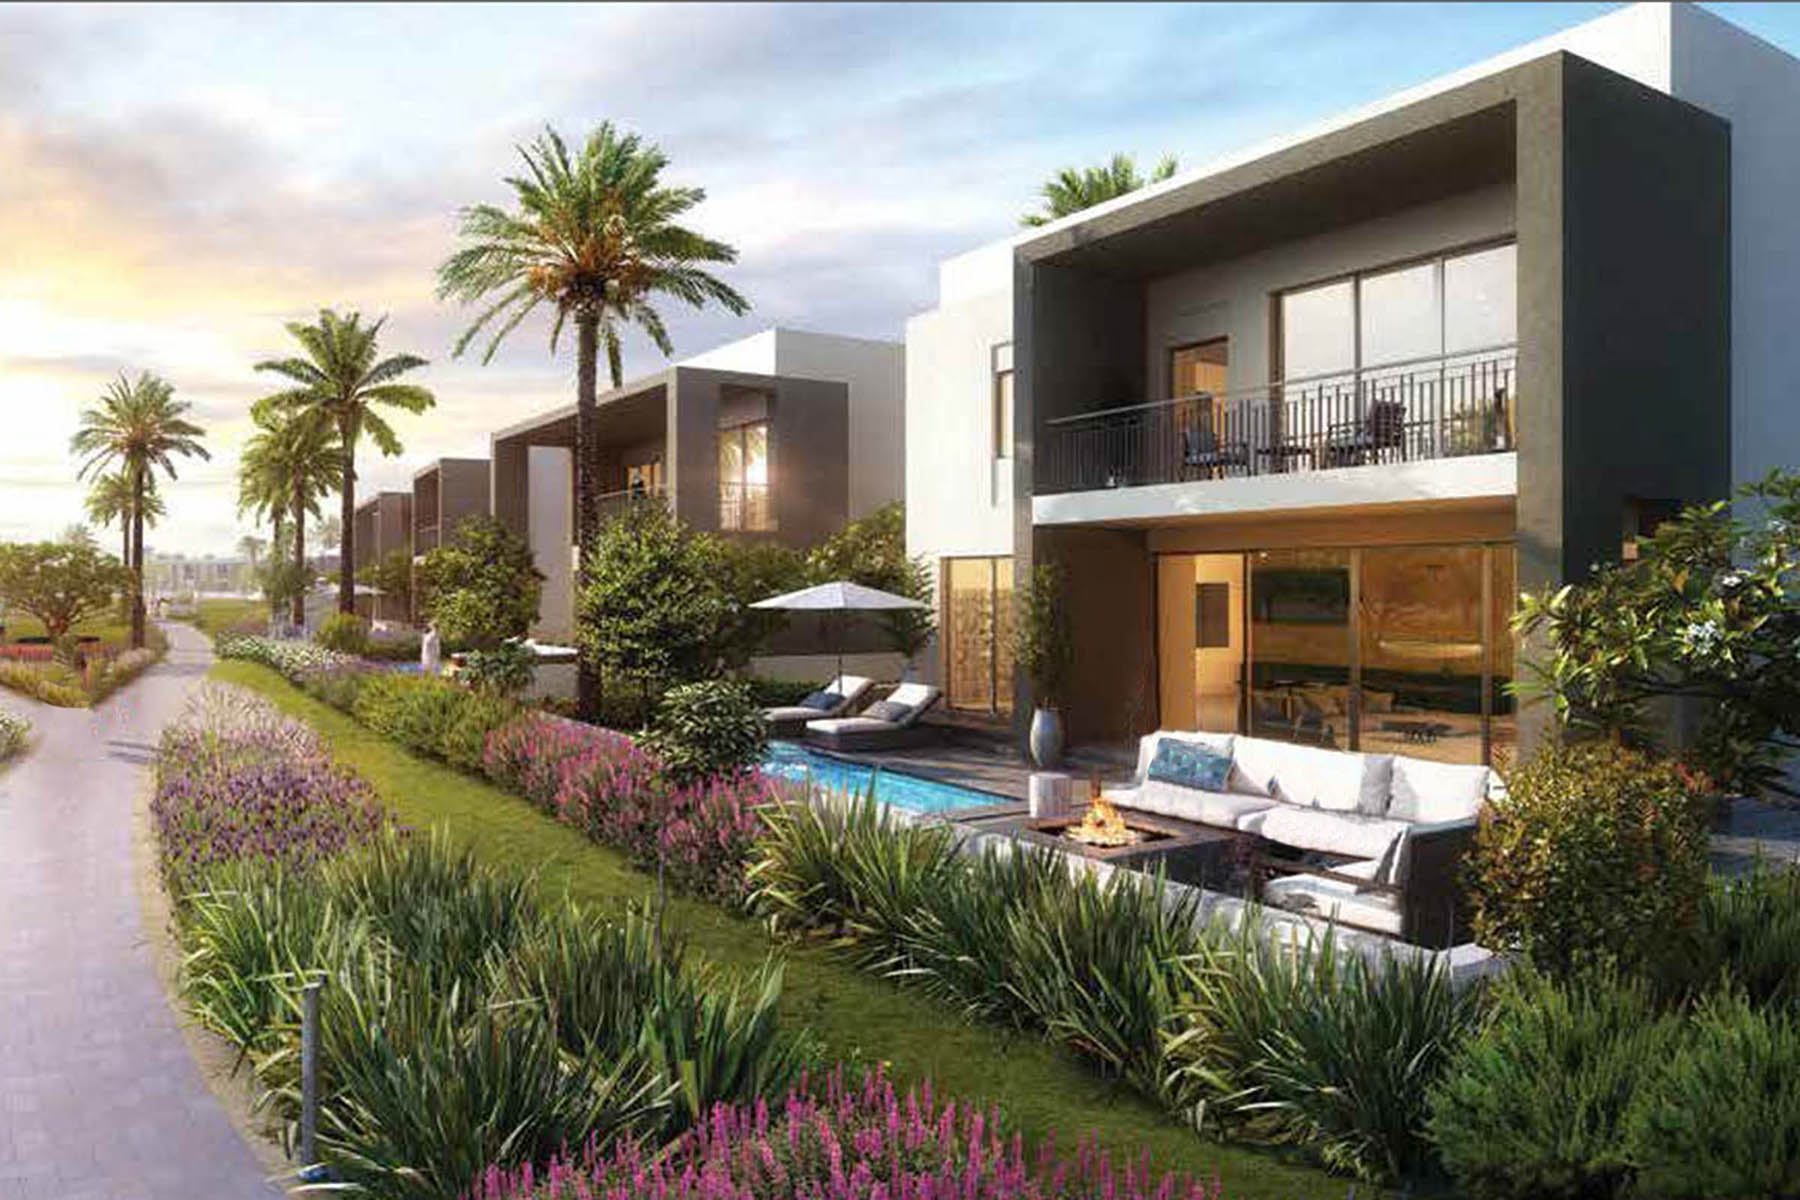 3 Bedroom Sidra 3 Large Plot 40 Percent Post Handover Dubai Hills Estate Sidra Villas Dubai,  00000 United Arab Emirates